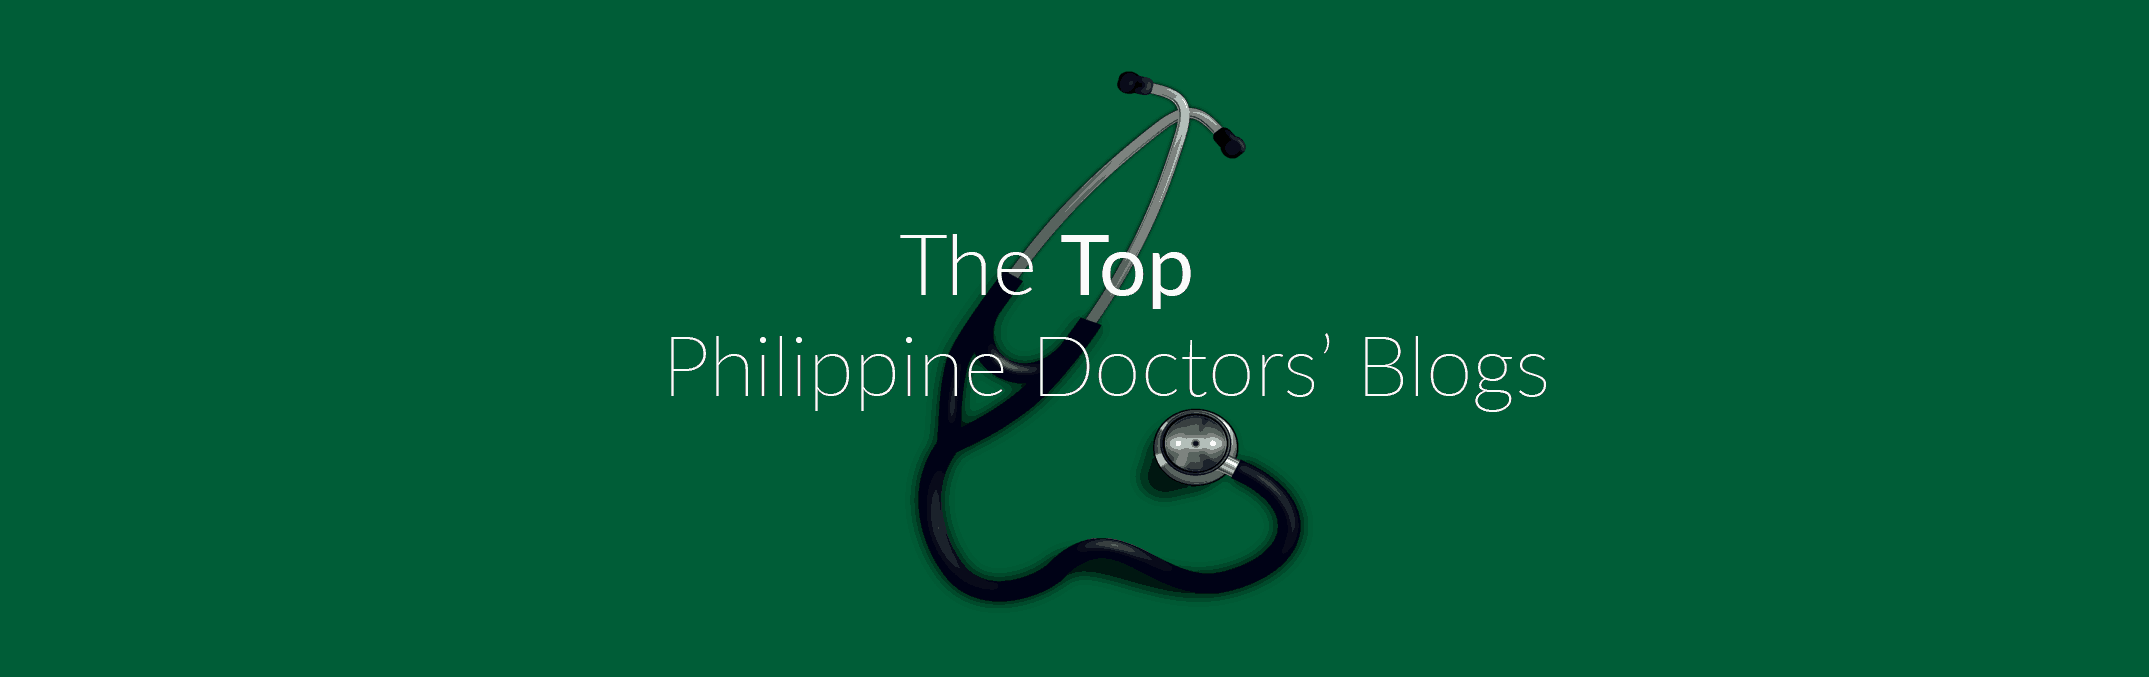 philippine doctor blogs